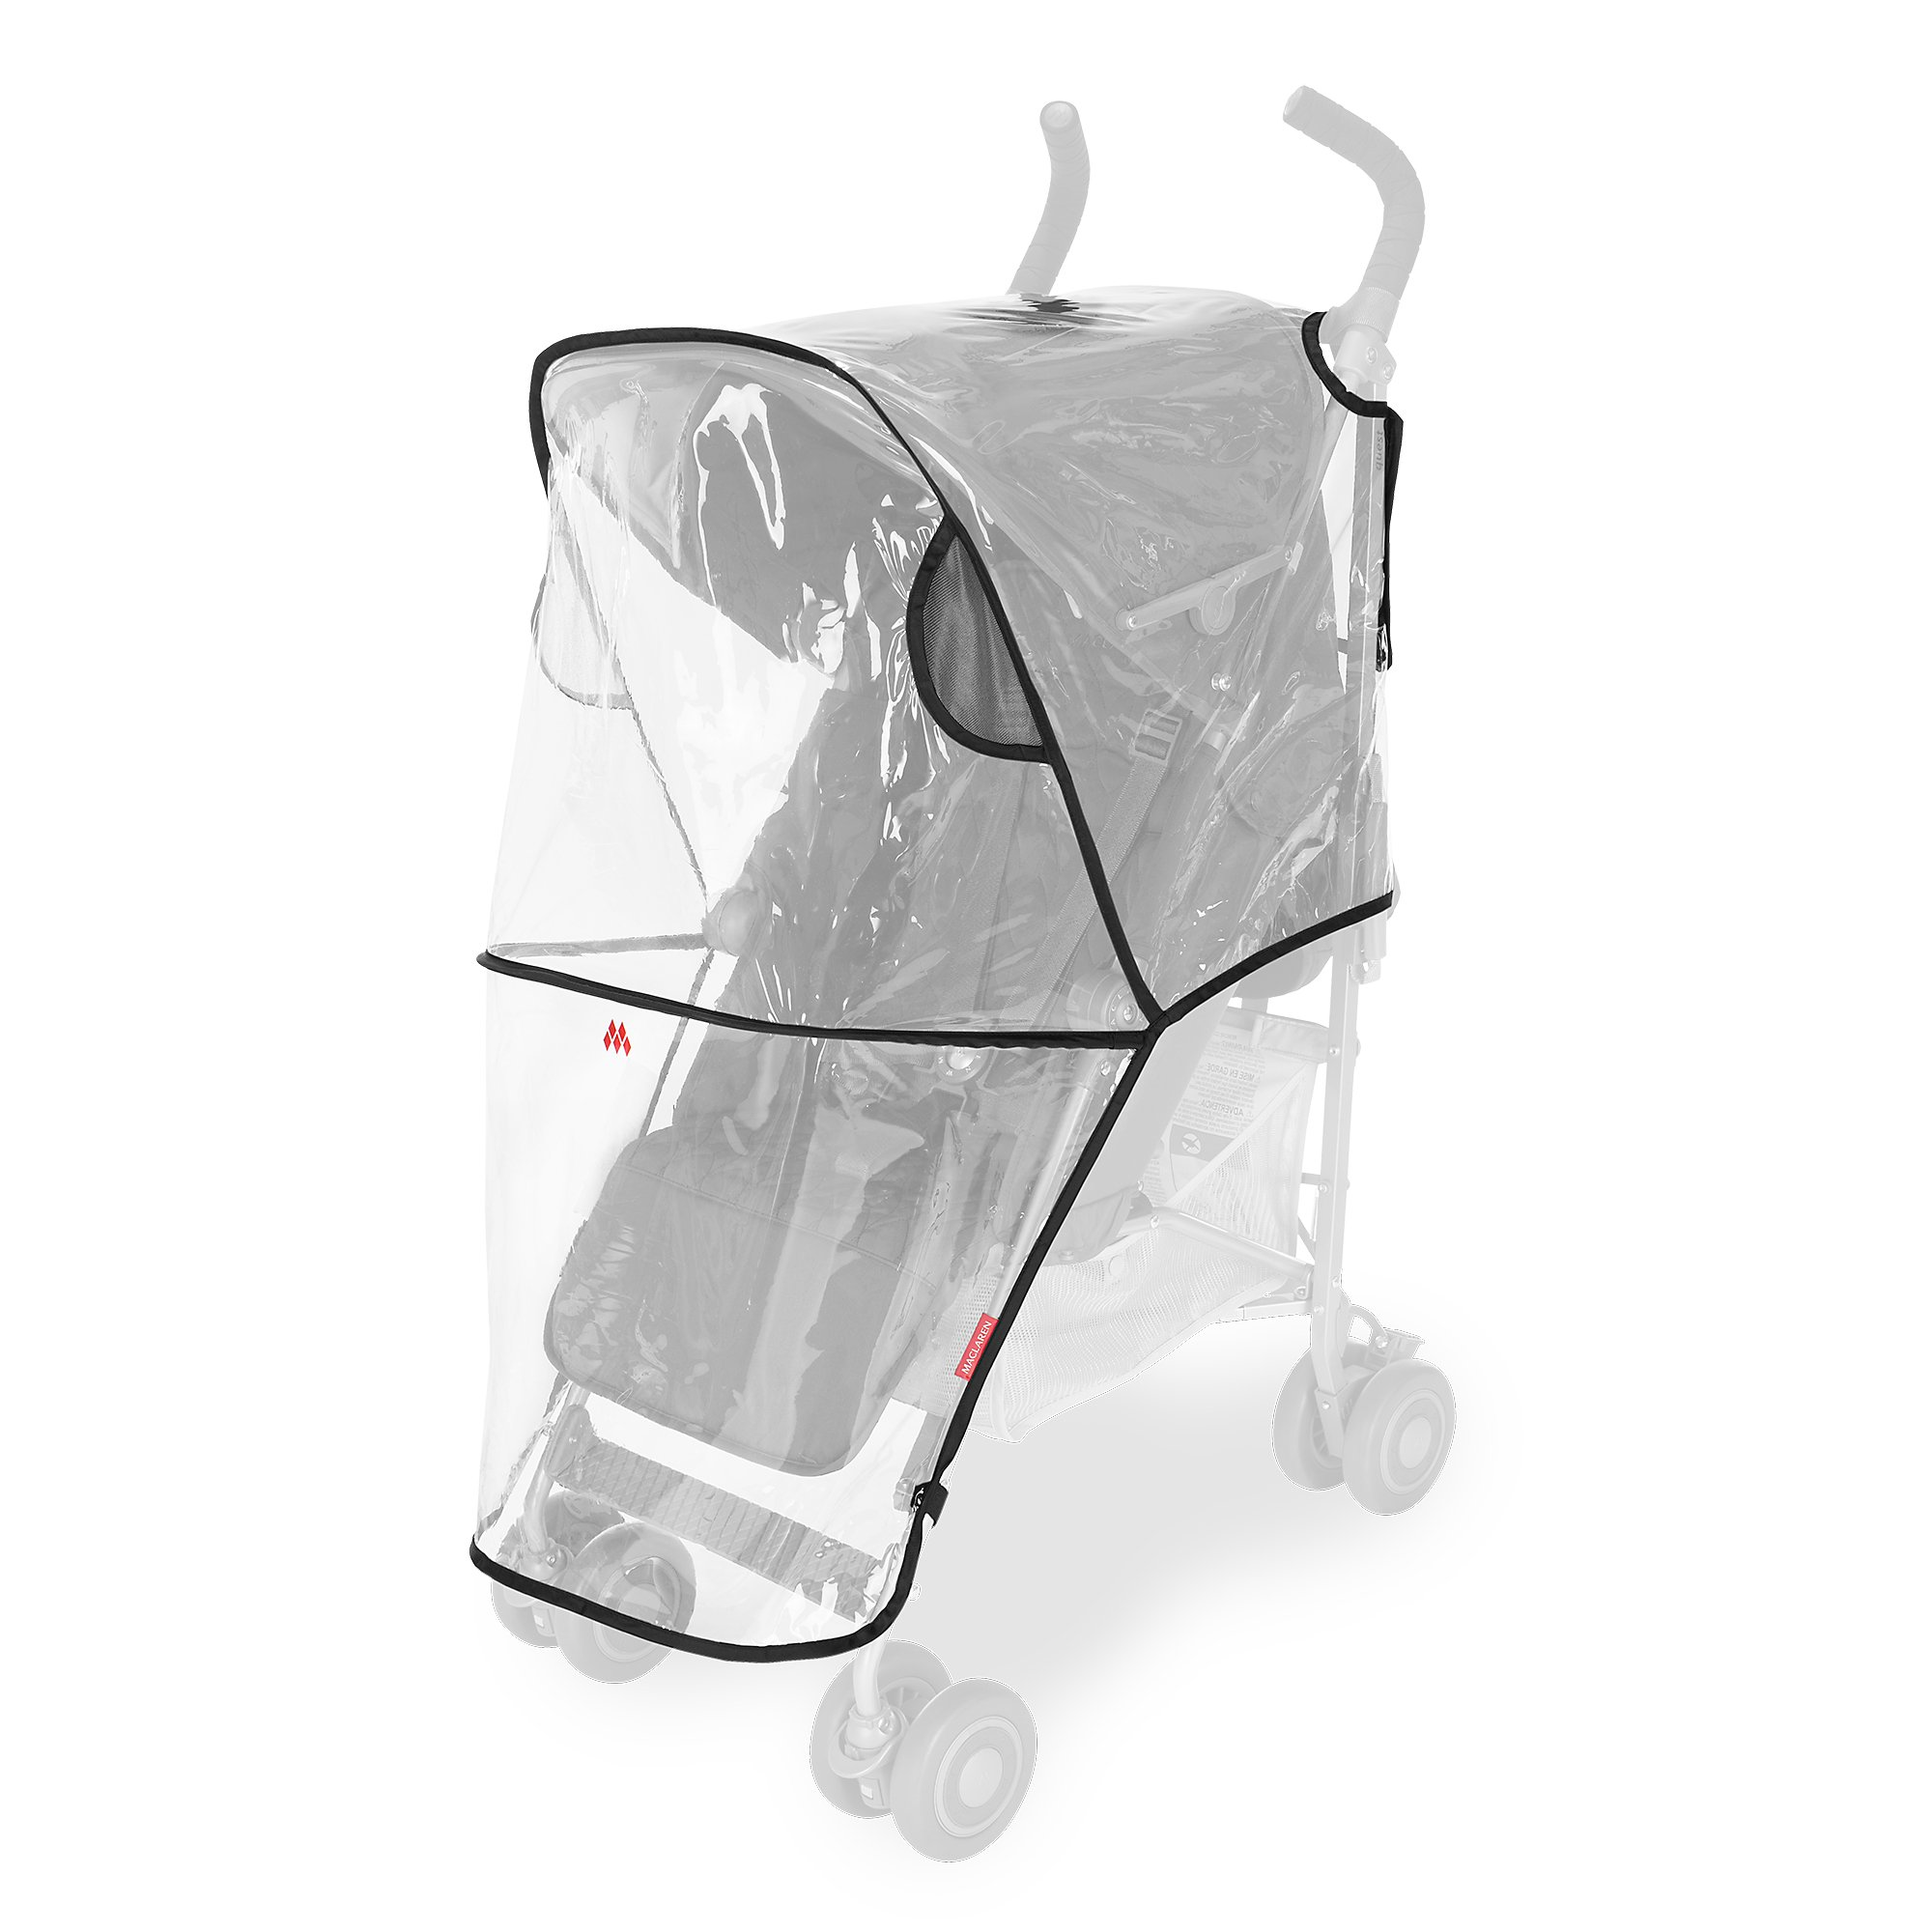 Maclaren Universal Raincover- Protects from rain, Wind and Snow. Fastens Quickly, Easily to All Maclarens and All Umbrella-fold Single Stroller Brands. Phthalate PVC Free by Maclaren